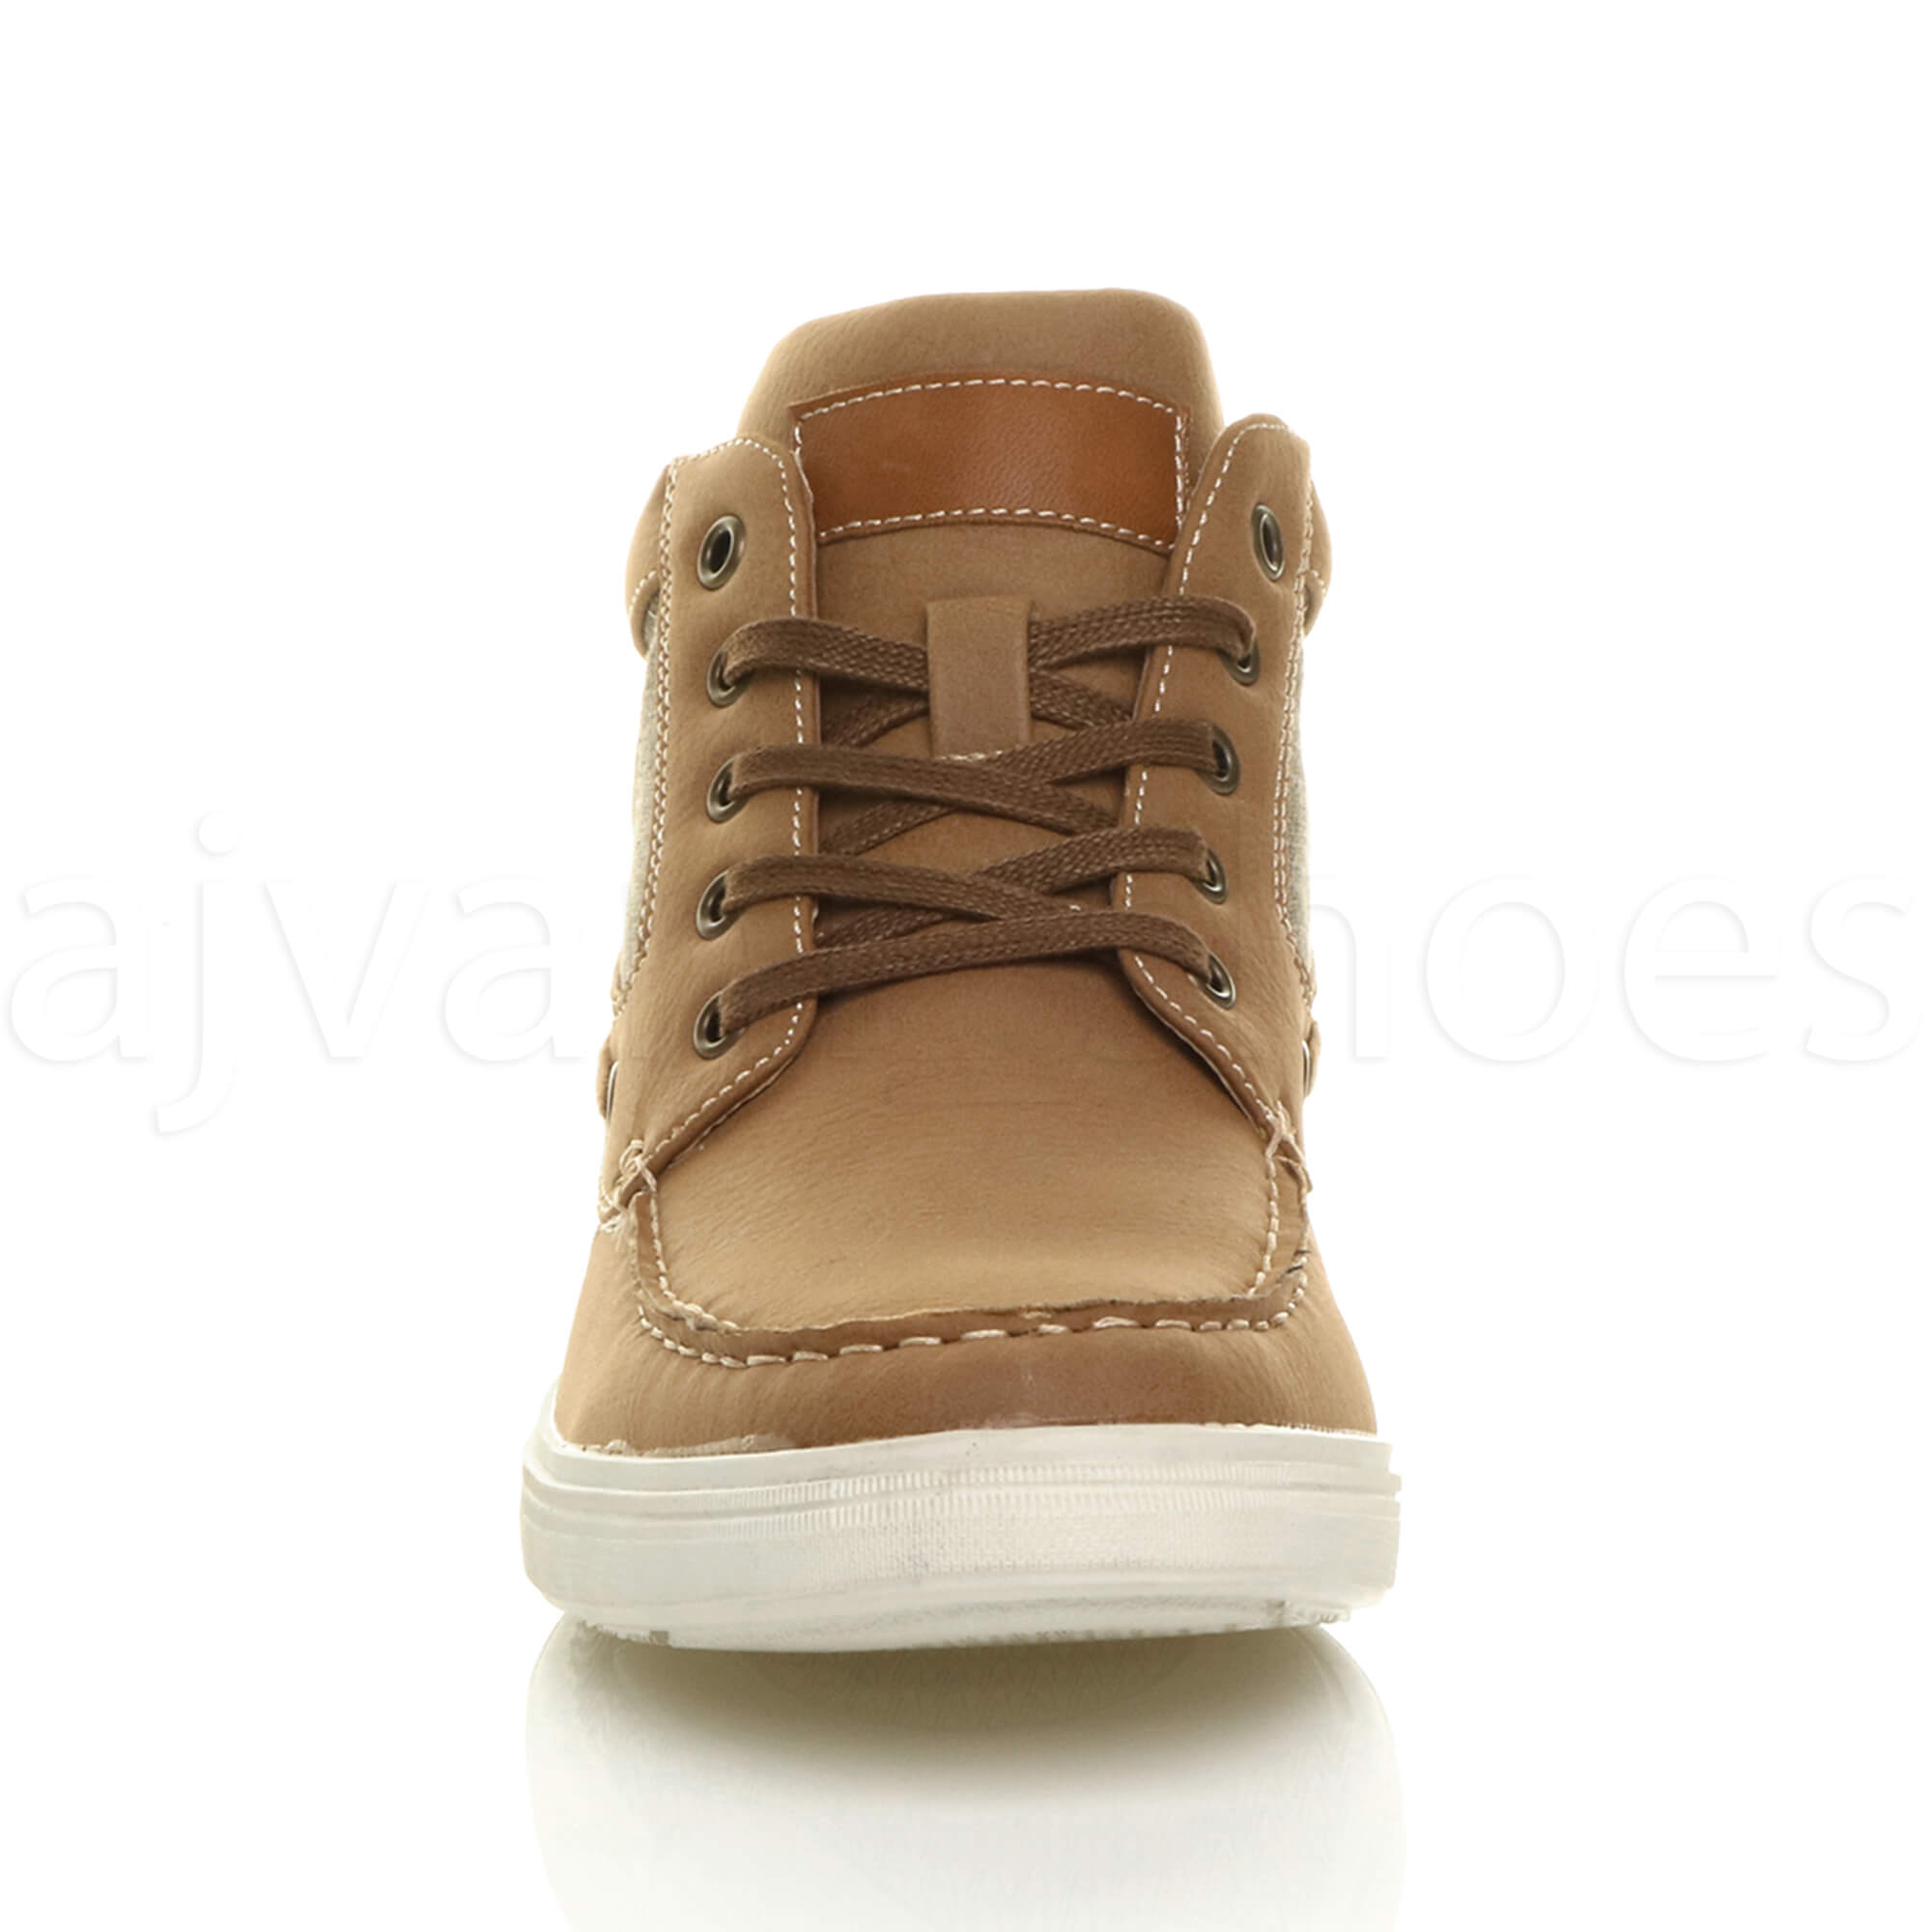 MENS-FLAT-LACE-UP-CASUAL-BOAT-CONTRAST-HI-TOP-TRAINERS-ANKLE-BOOTS-PUMPS-SIZE thumbnail 13